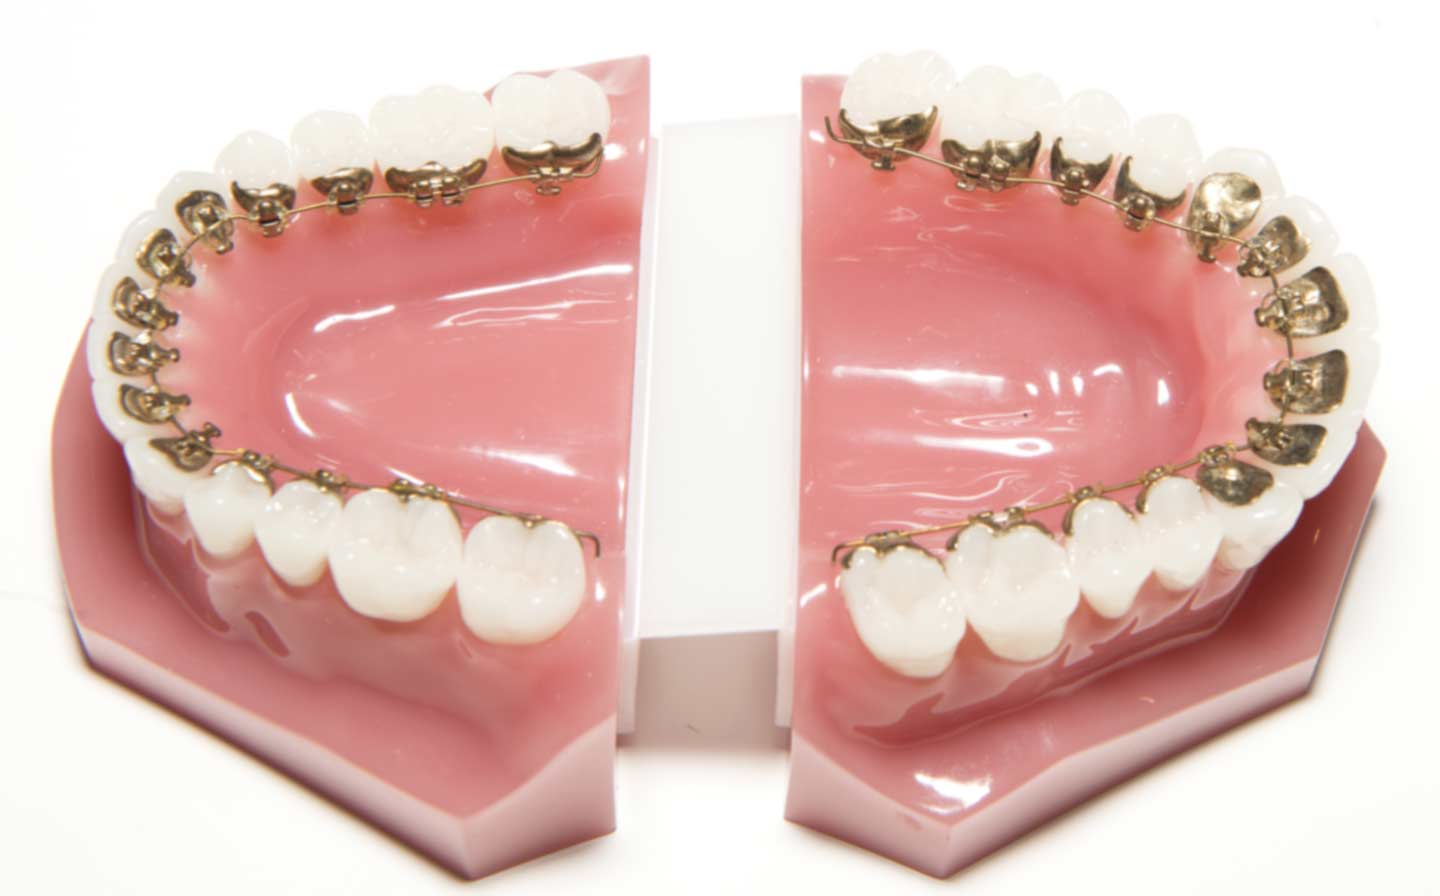 lingual braces on both arches